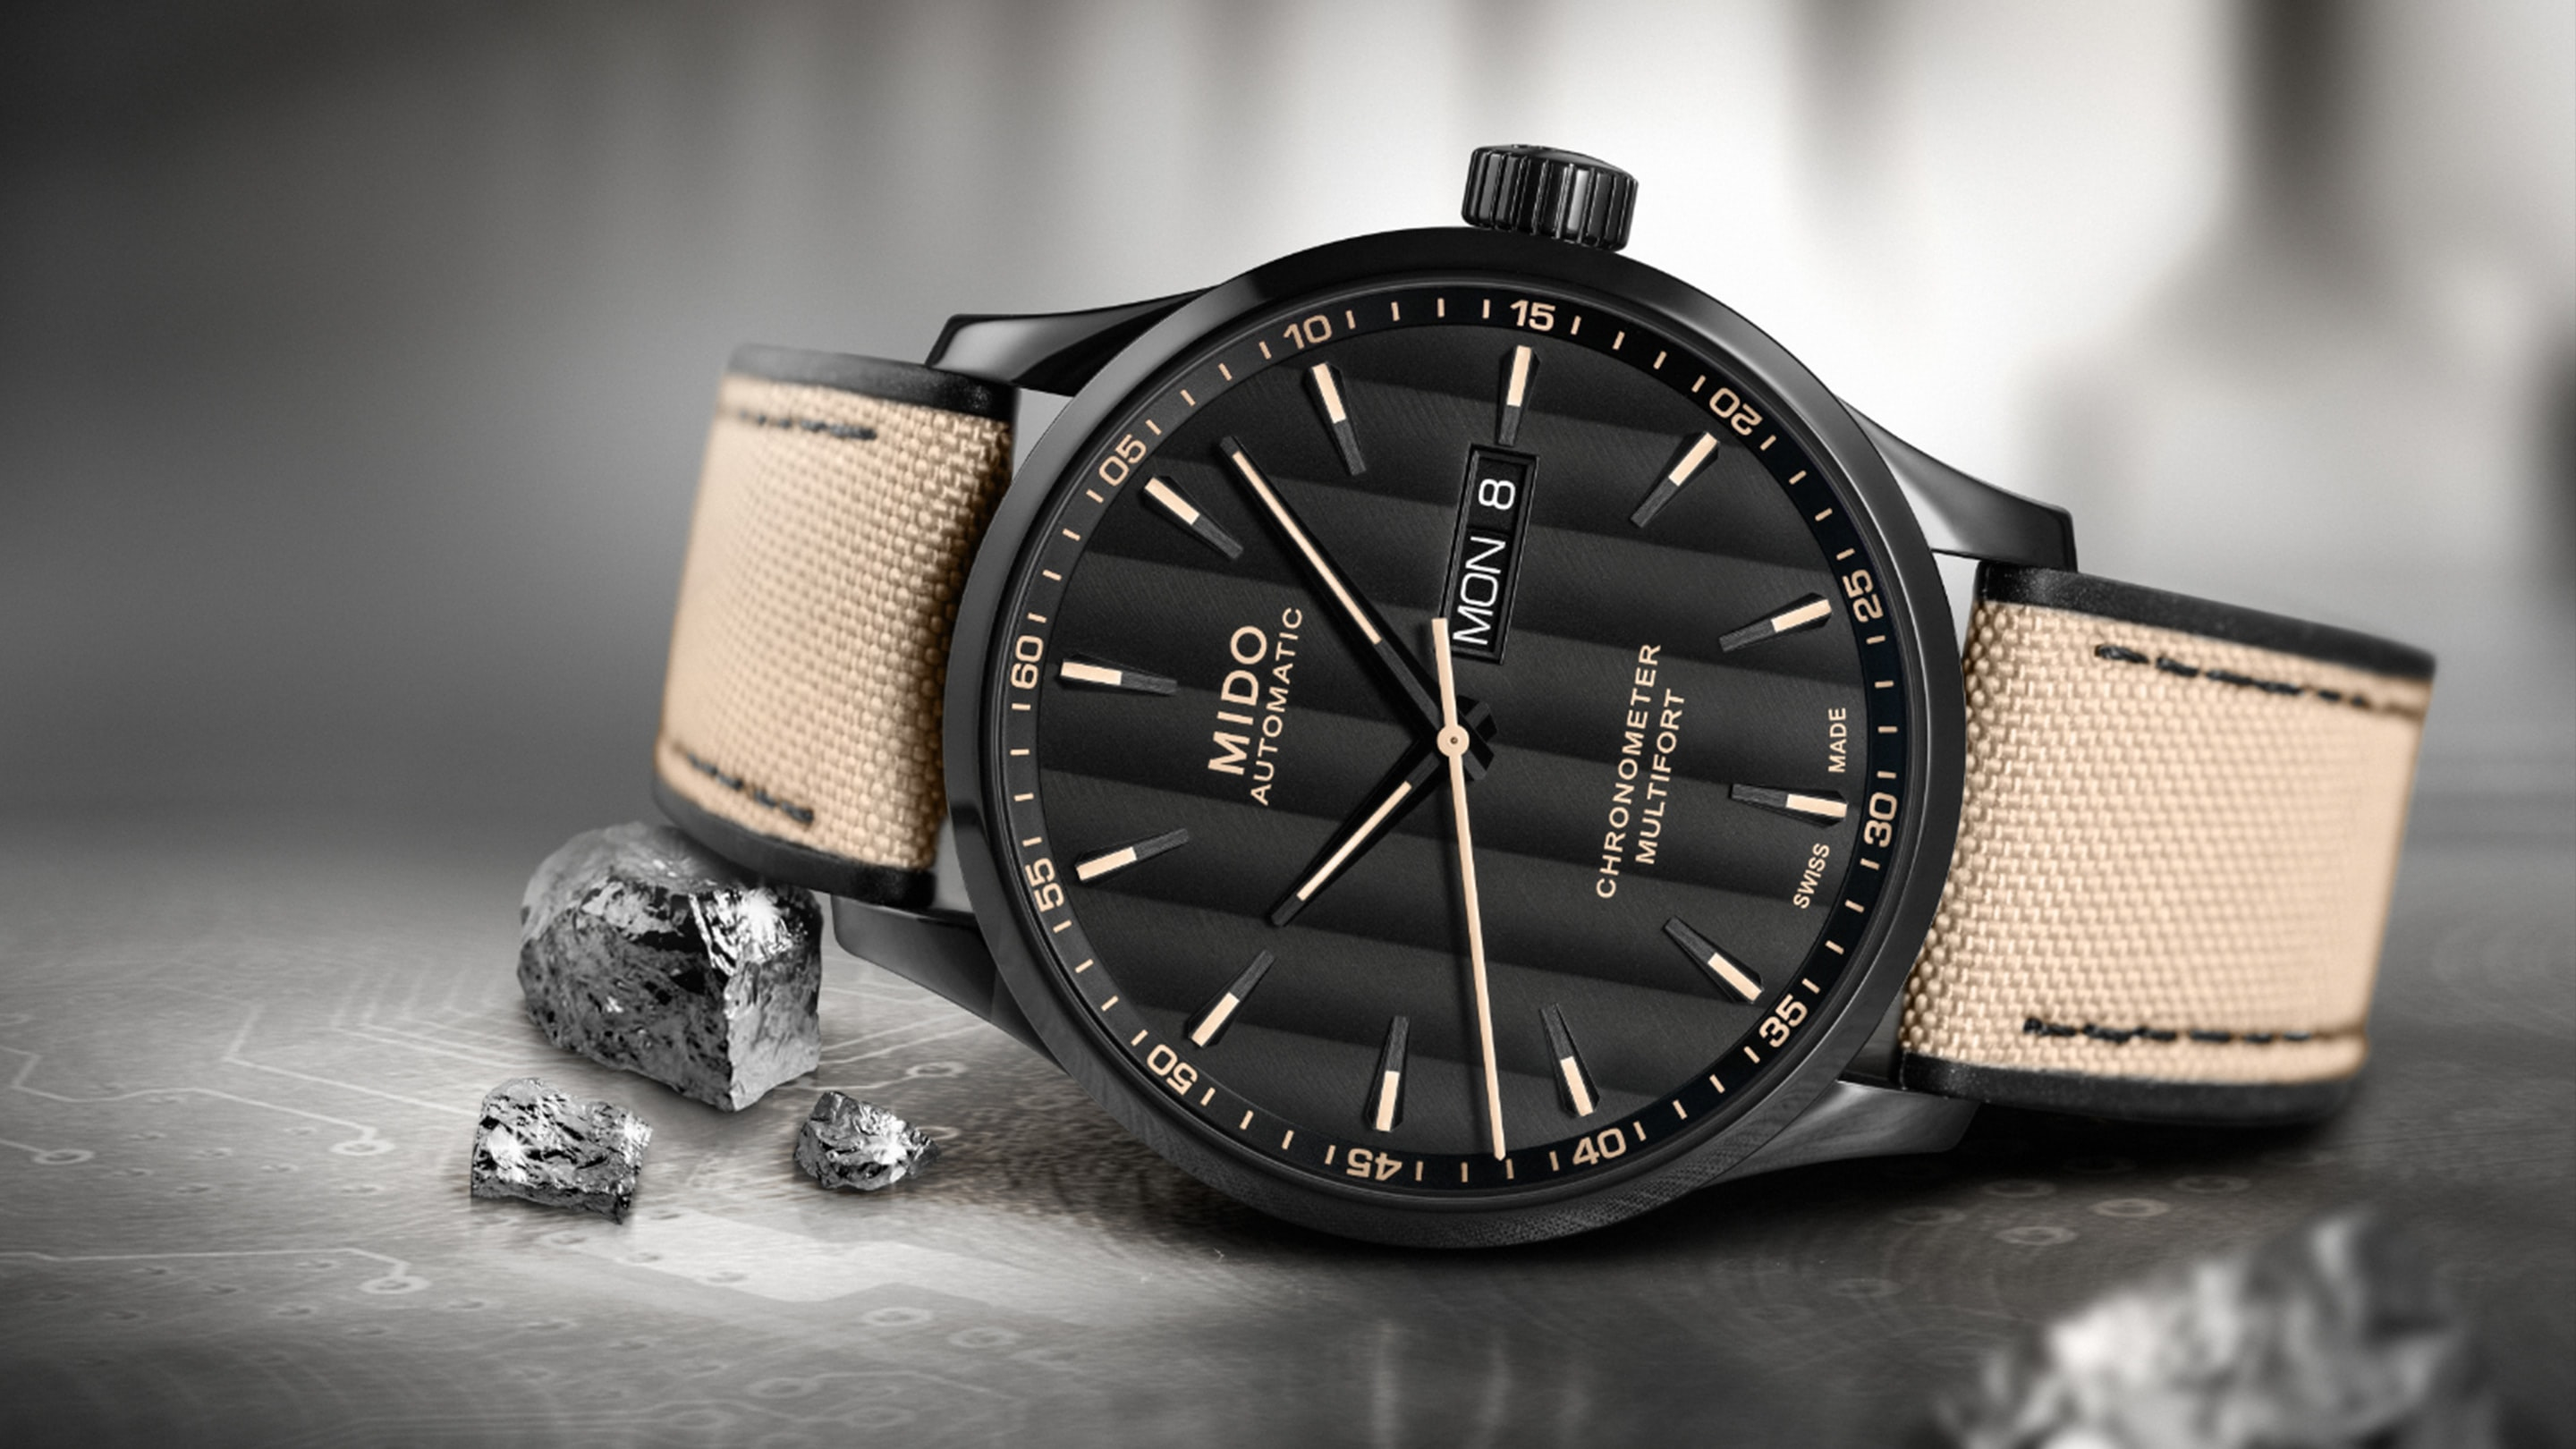 Introducing: The Mido Multifort Chronometer Mido COSC Hero